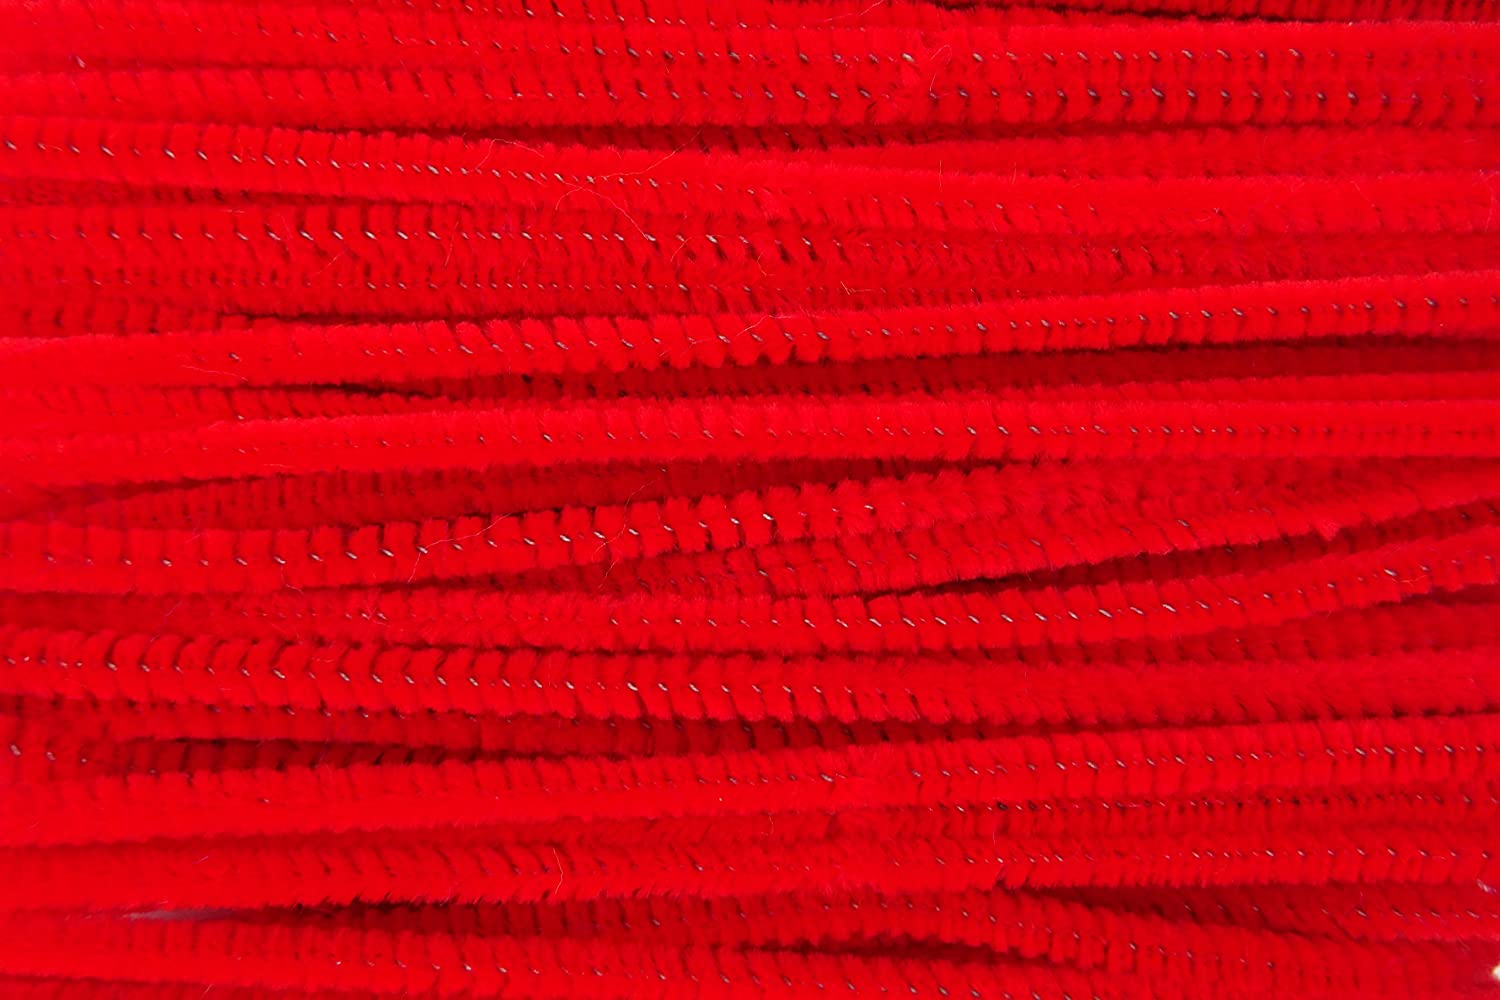 25 Or 50 Chenille Stems Craft Pipe Cleaners - Size 12